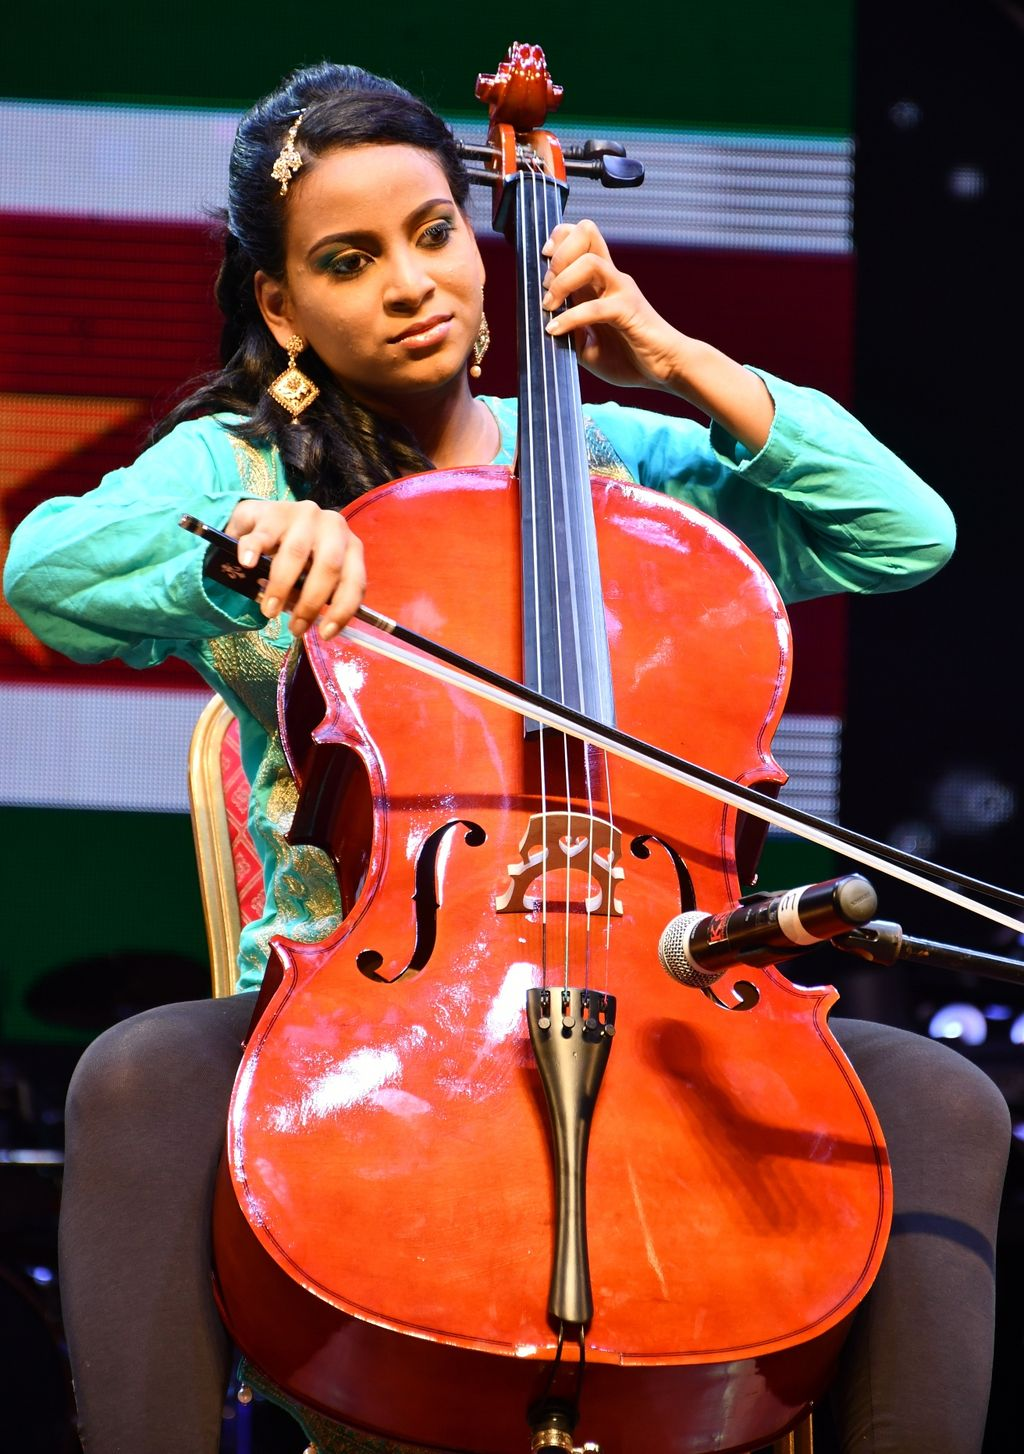 Robin Nandlal of Suriname plays the cello during the talent section of the pageant.